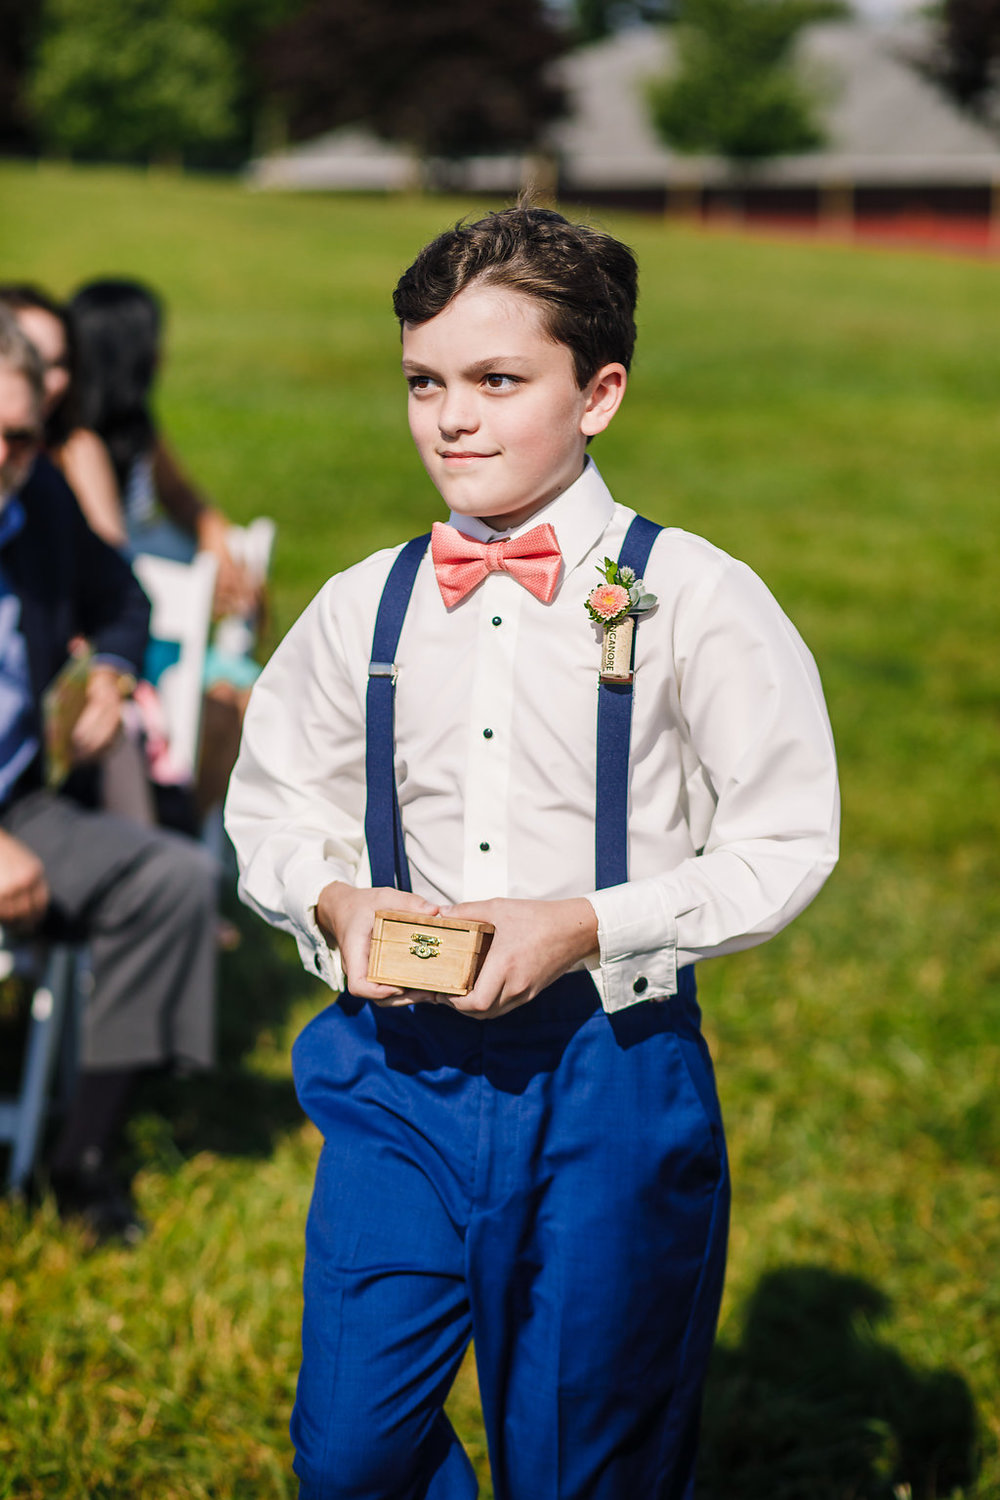 brielle-davis-events-photography-by-brea-linganore-winery-james-sarah-wedding-ceremony-ring-bearer.jpg